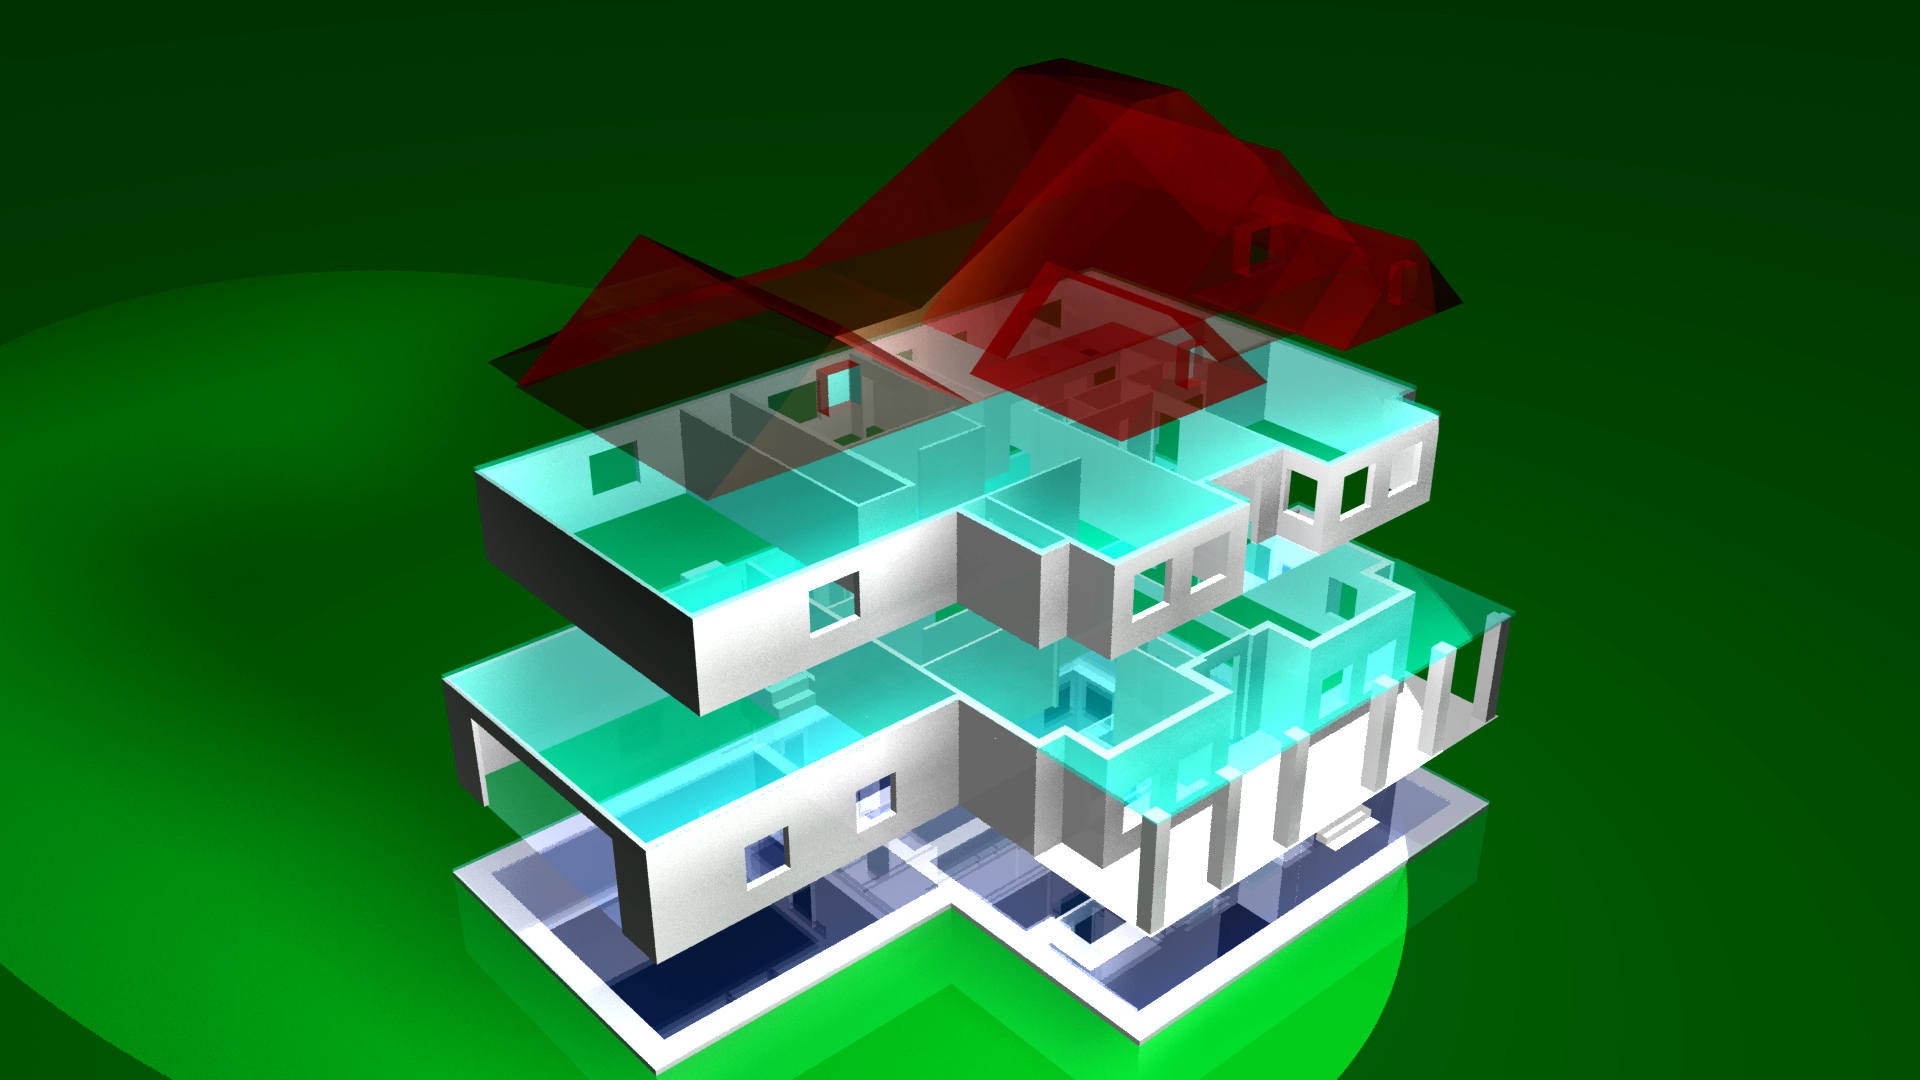 3D House Plans - 3D Printed House Models